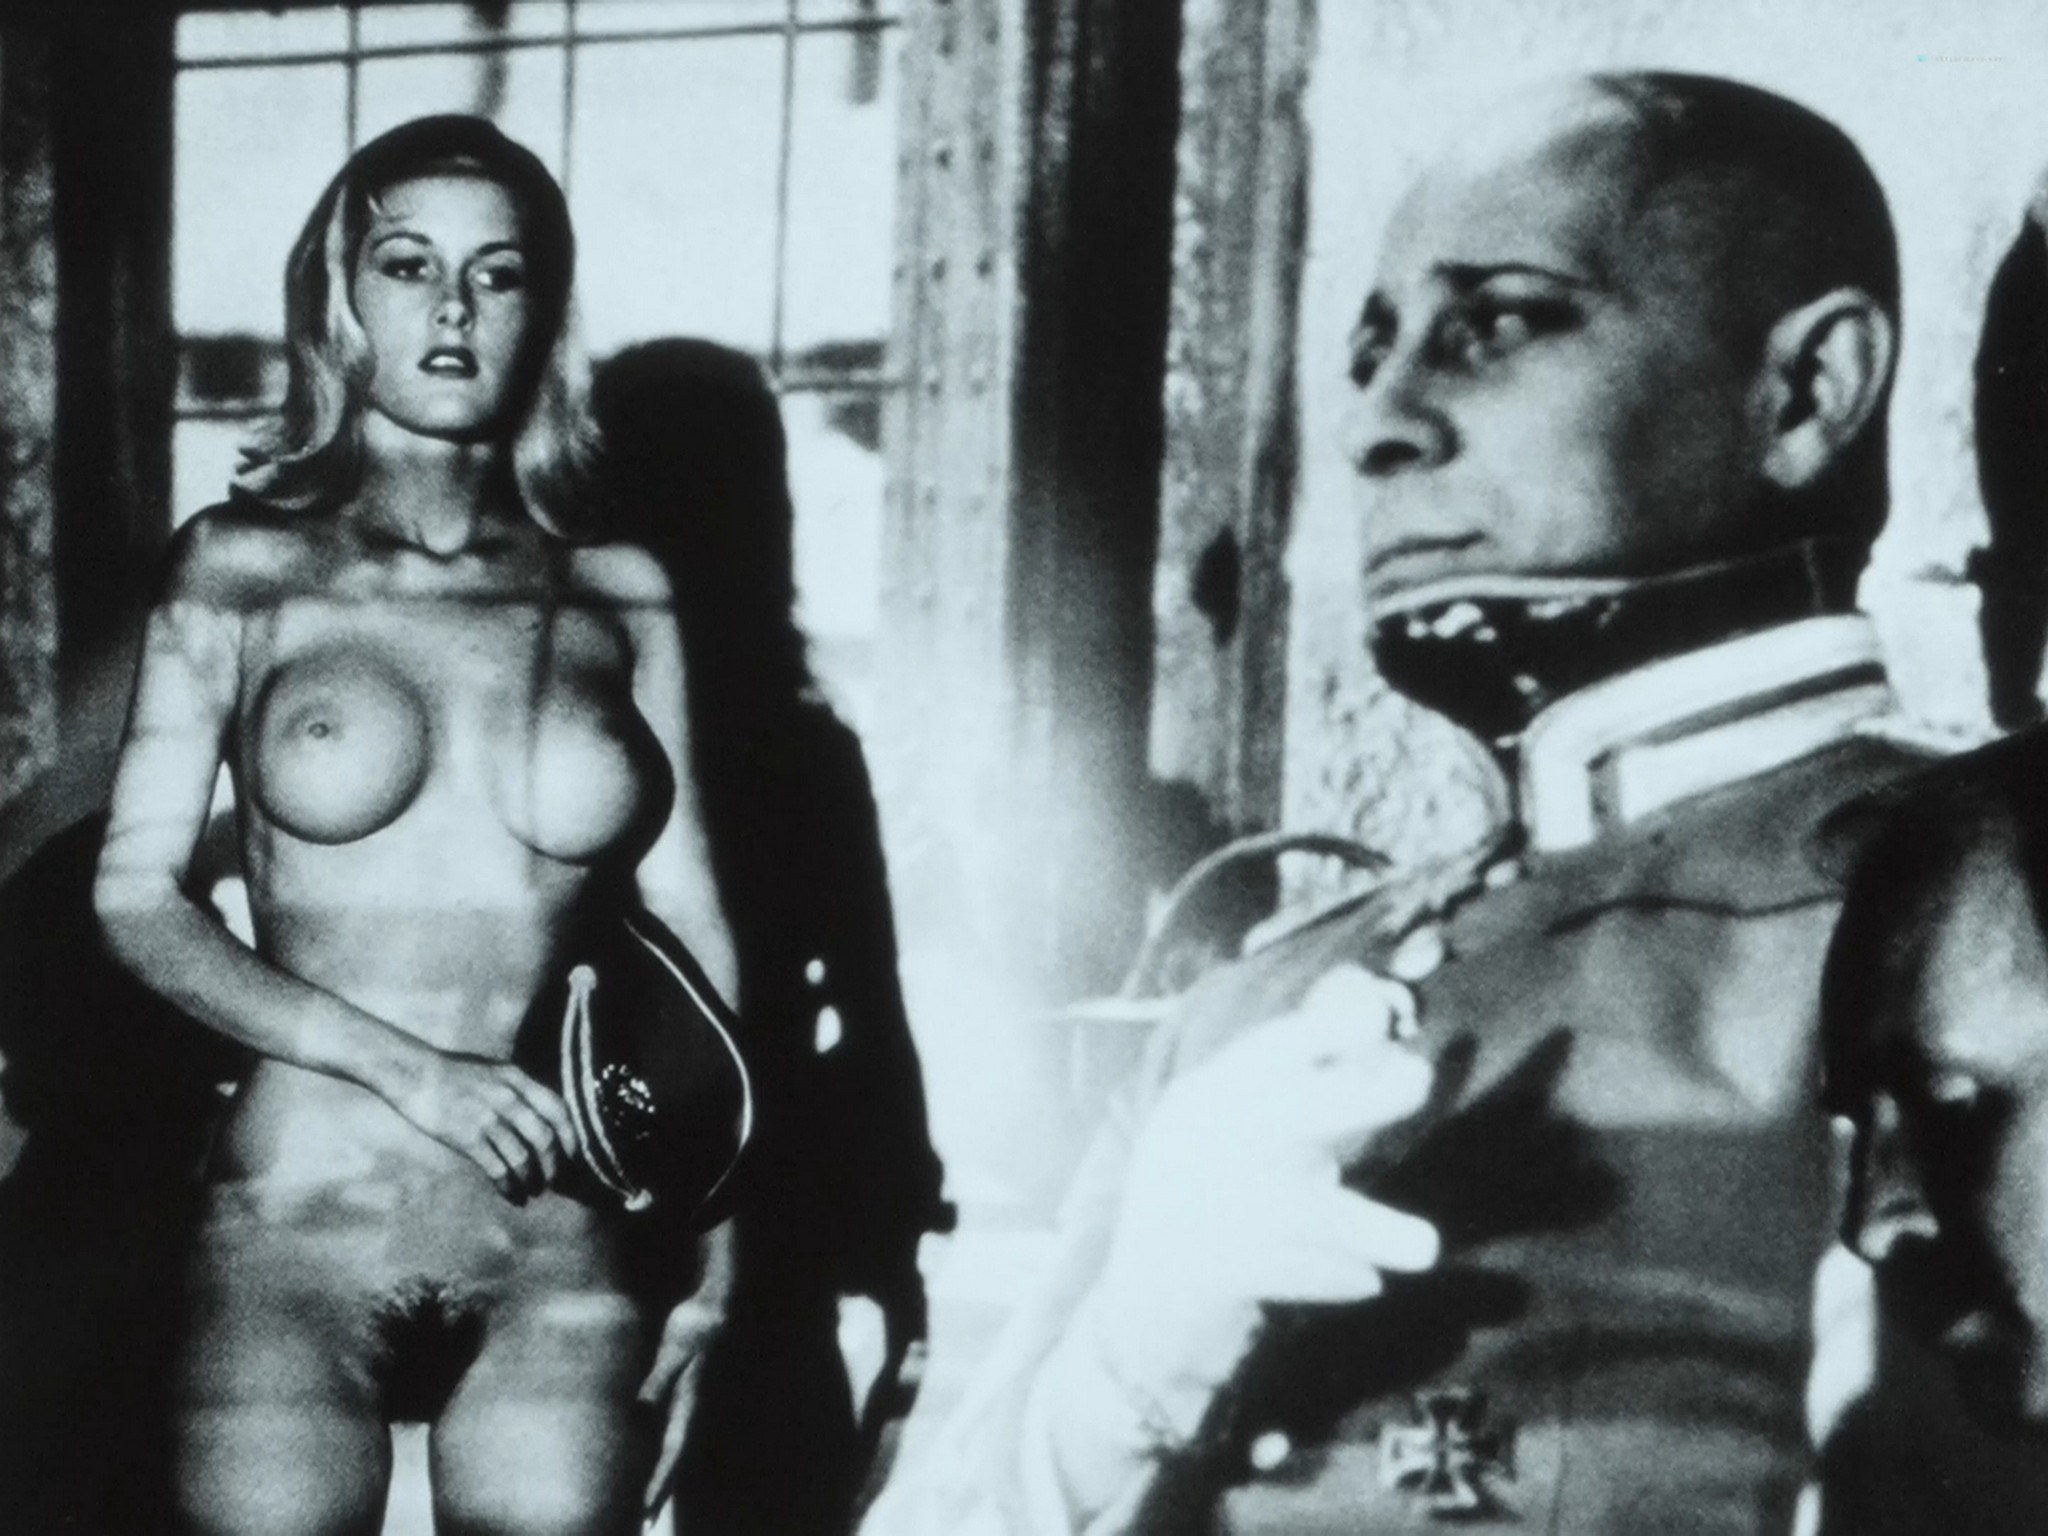 Sigourney Weaver hot Charlotte Rampling nude others nude most full frontal Helmut Newton Frames from the Edge 1989 1080p BluRay 26